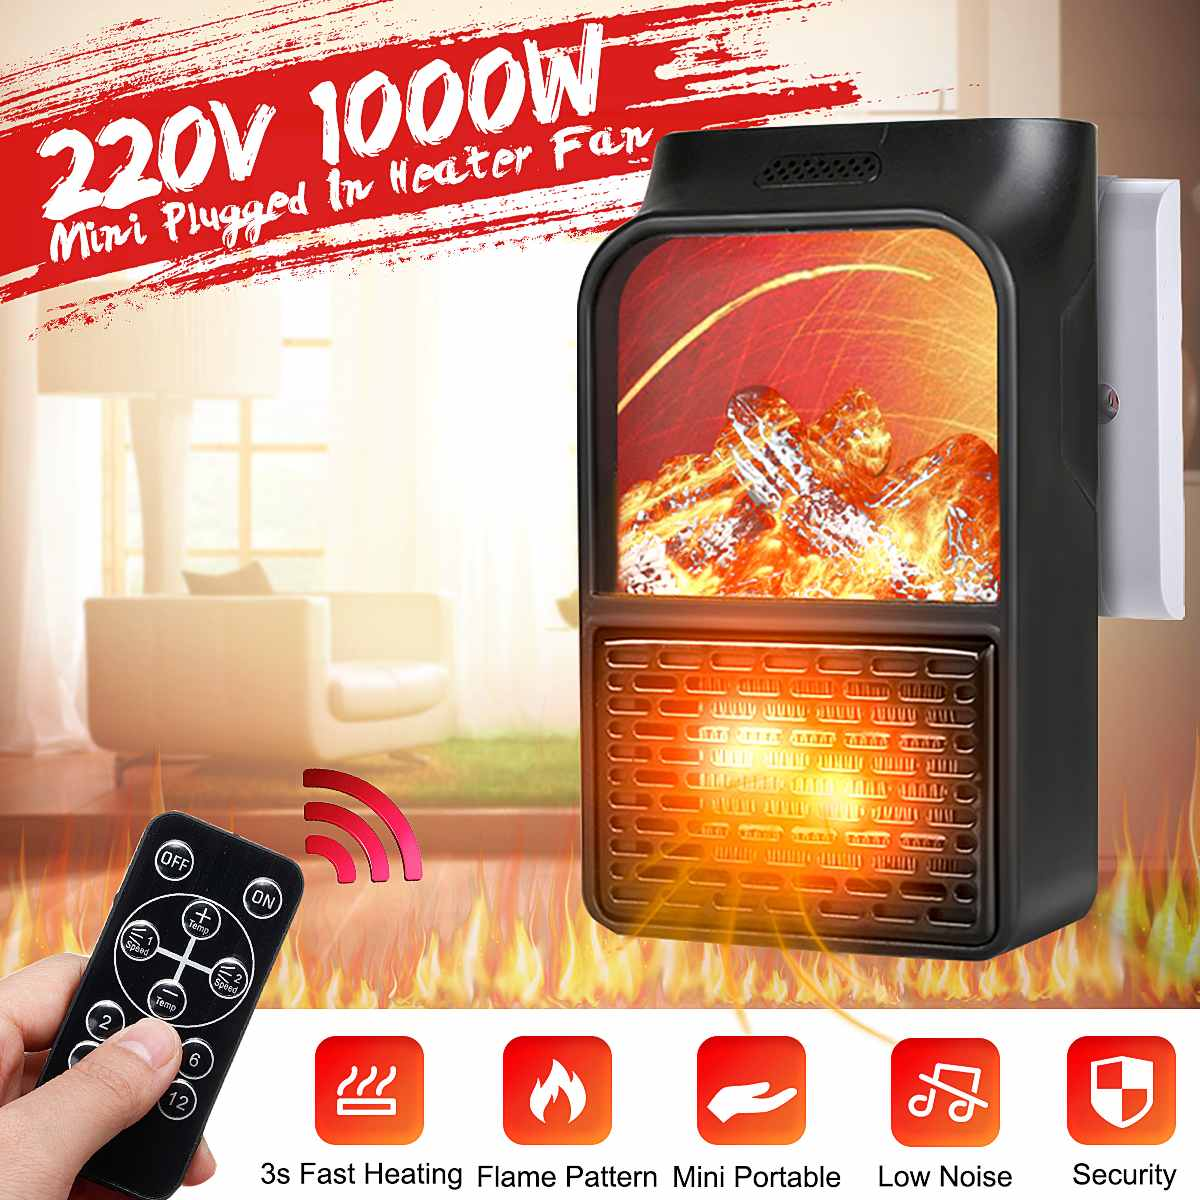 1000W Mini Portable PTC Heater Electric Heater Fan Fireplace Flame Display Timer Remote Control Household Winter Heating Machine